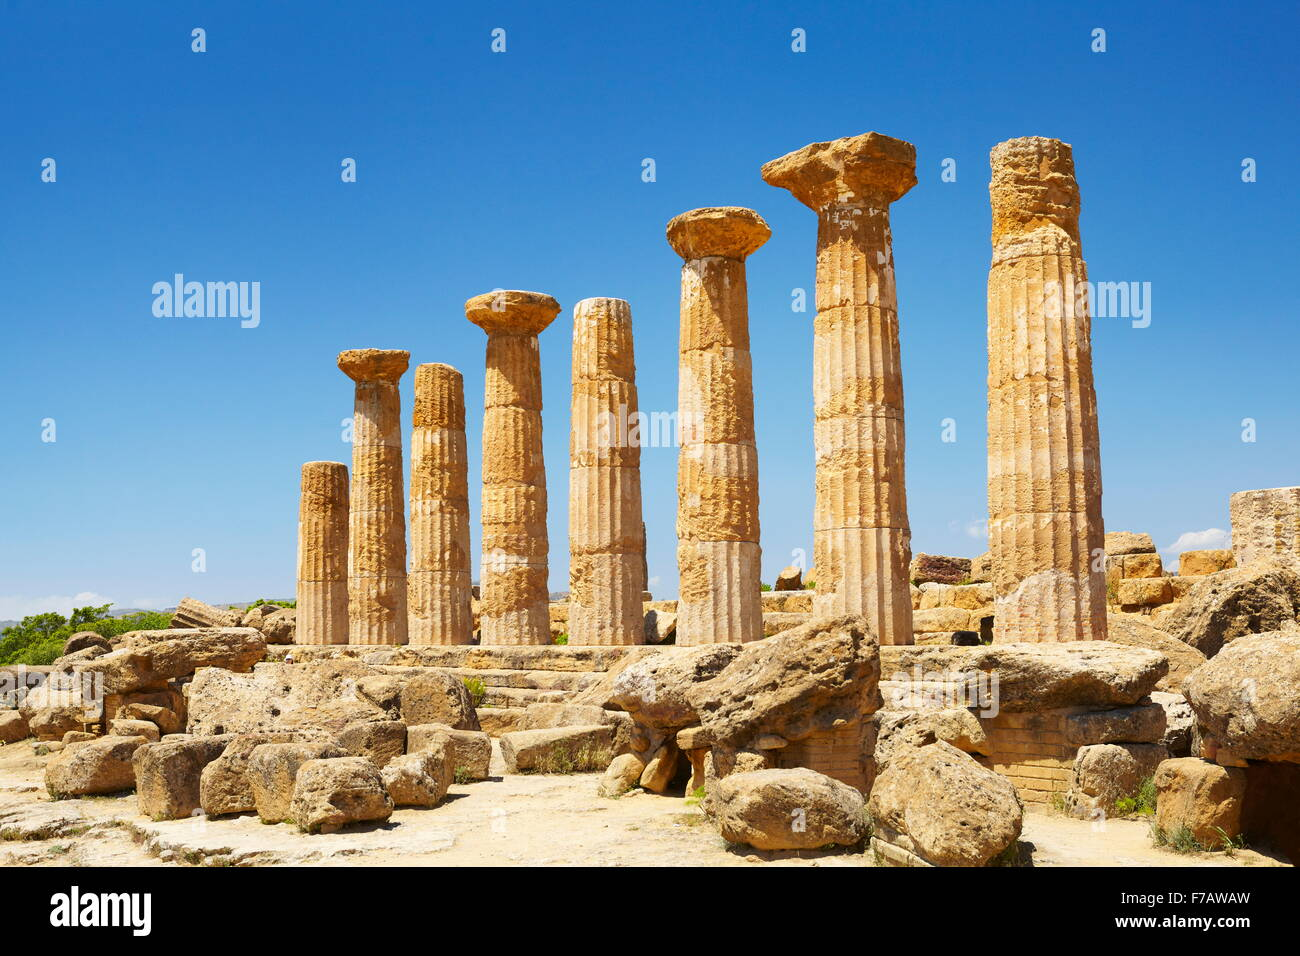 Valley of Temples (Valle dei Templi), Temple of Hercules (Tempio di Eracle) Agrigento, Sicily, Italy UNESCO - Stock Image